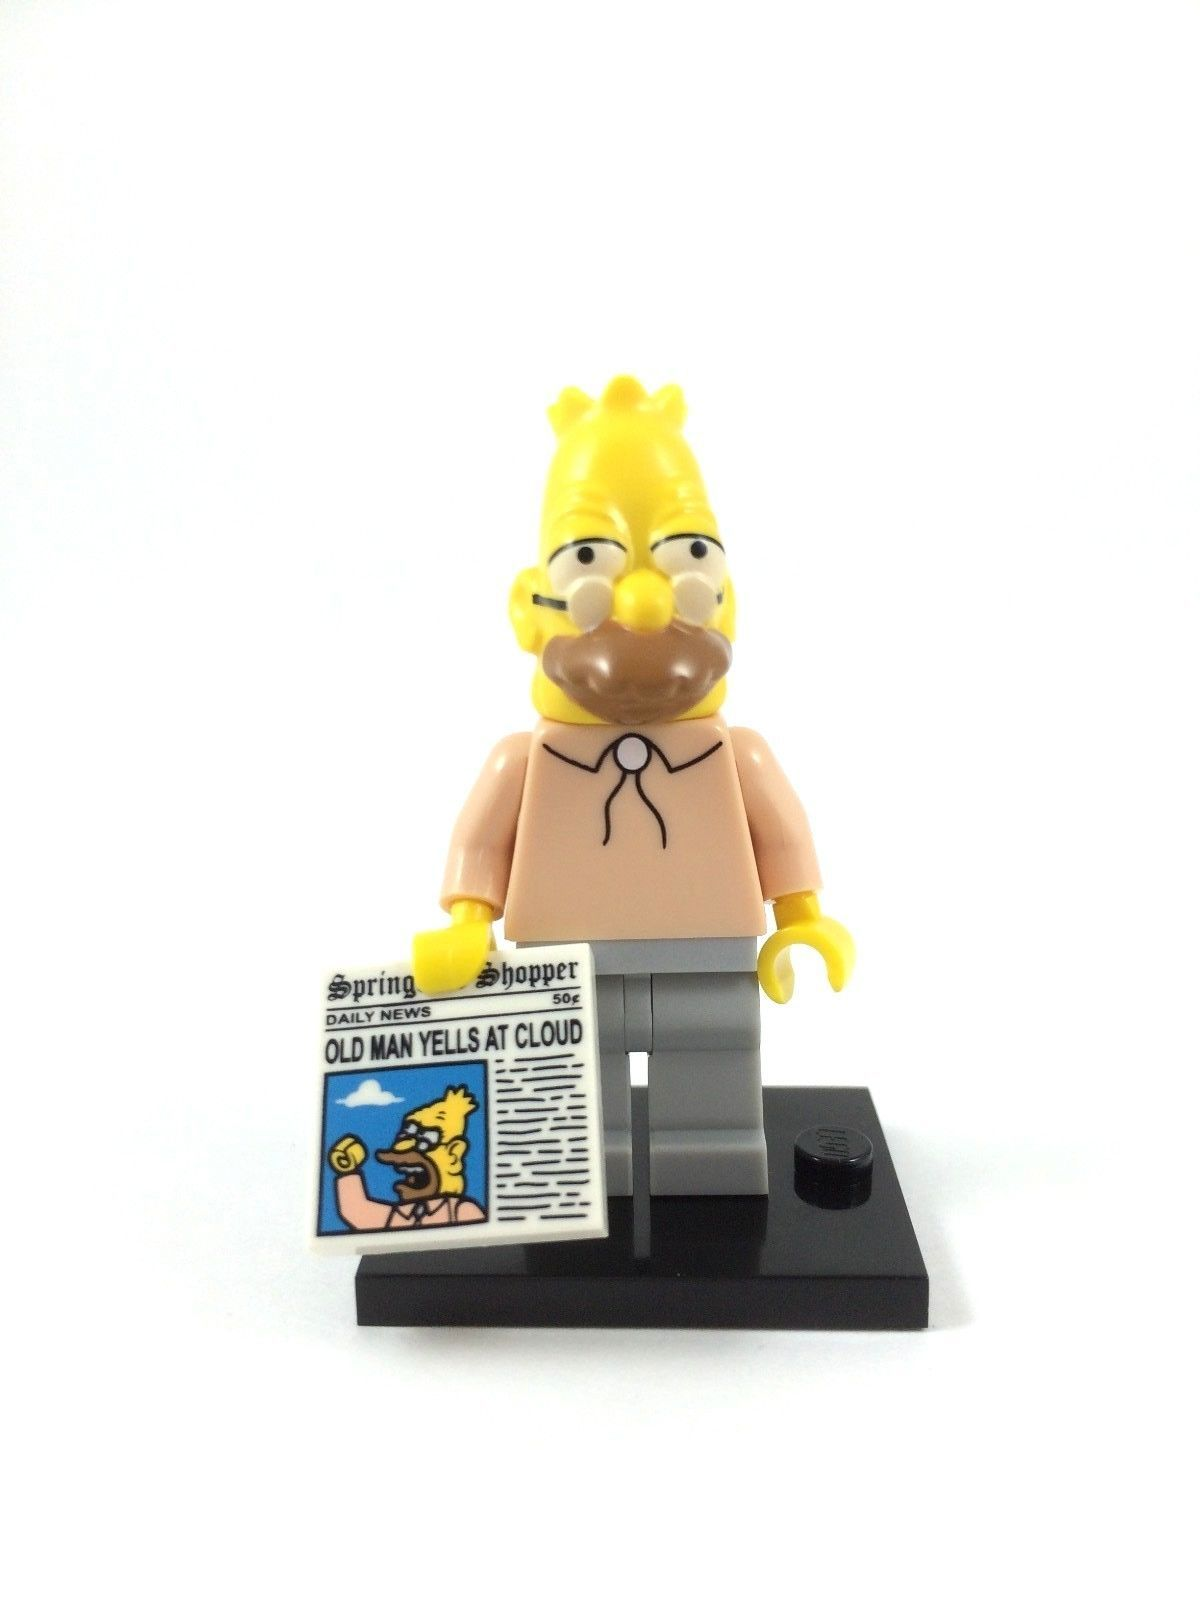 MINT CONDITION LEGO SERIES 1 SIMPSONS GRAMPA